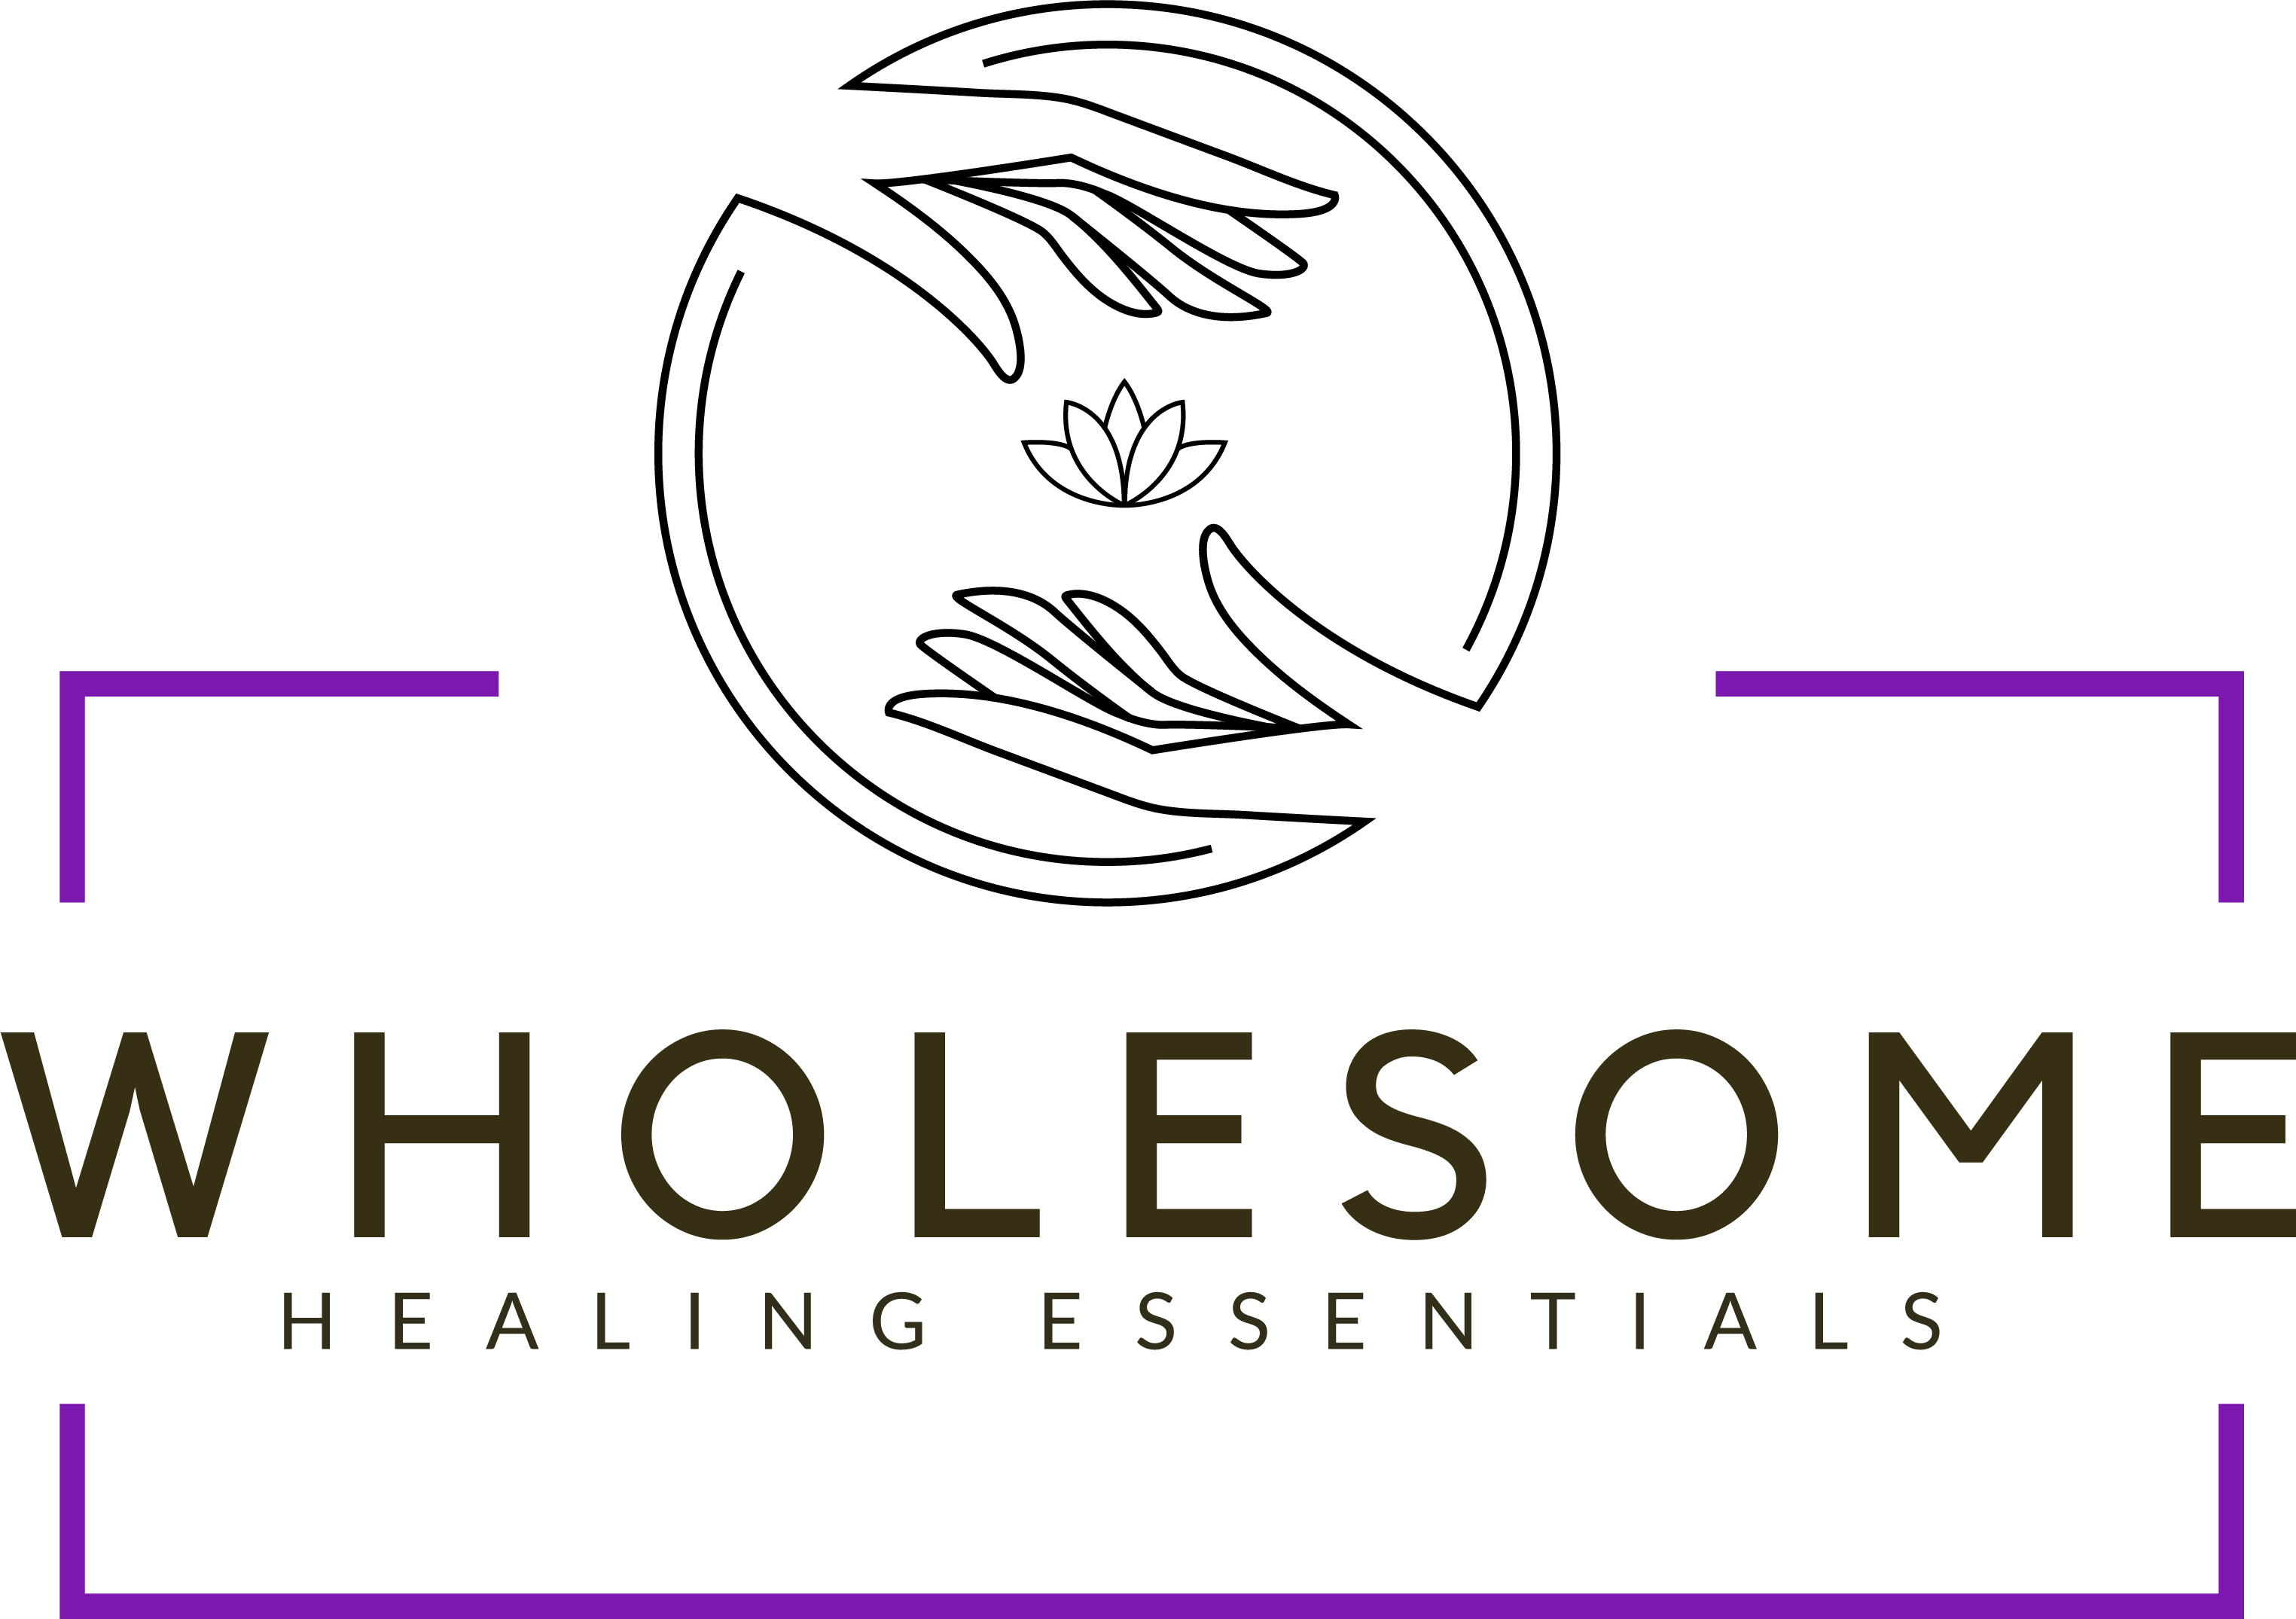 Louise Robertson – Wholesome Healing Essentials